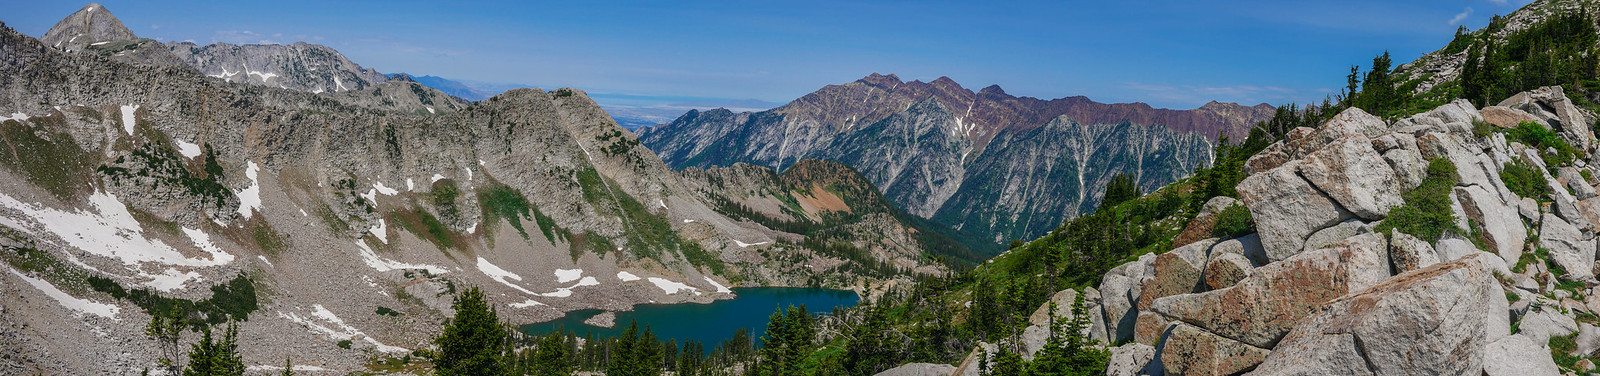 White Pine Lake and Little Cottonwood Canyon from the ridge between Red and White Baldy